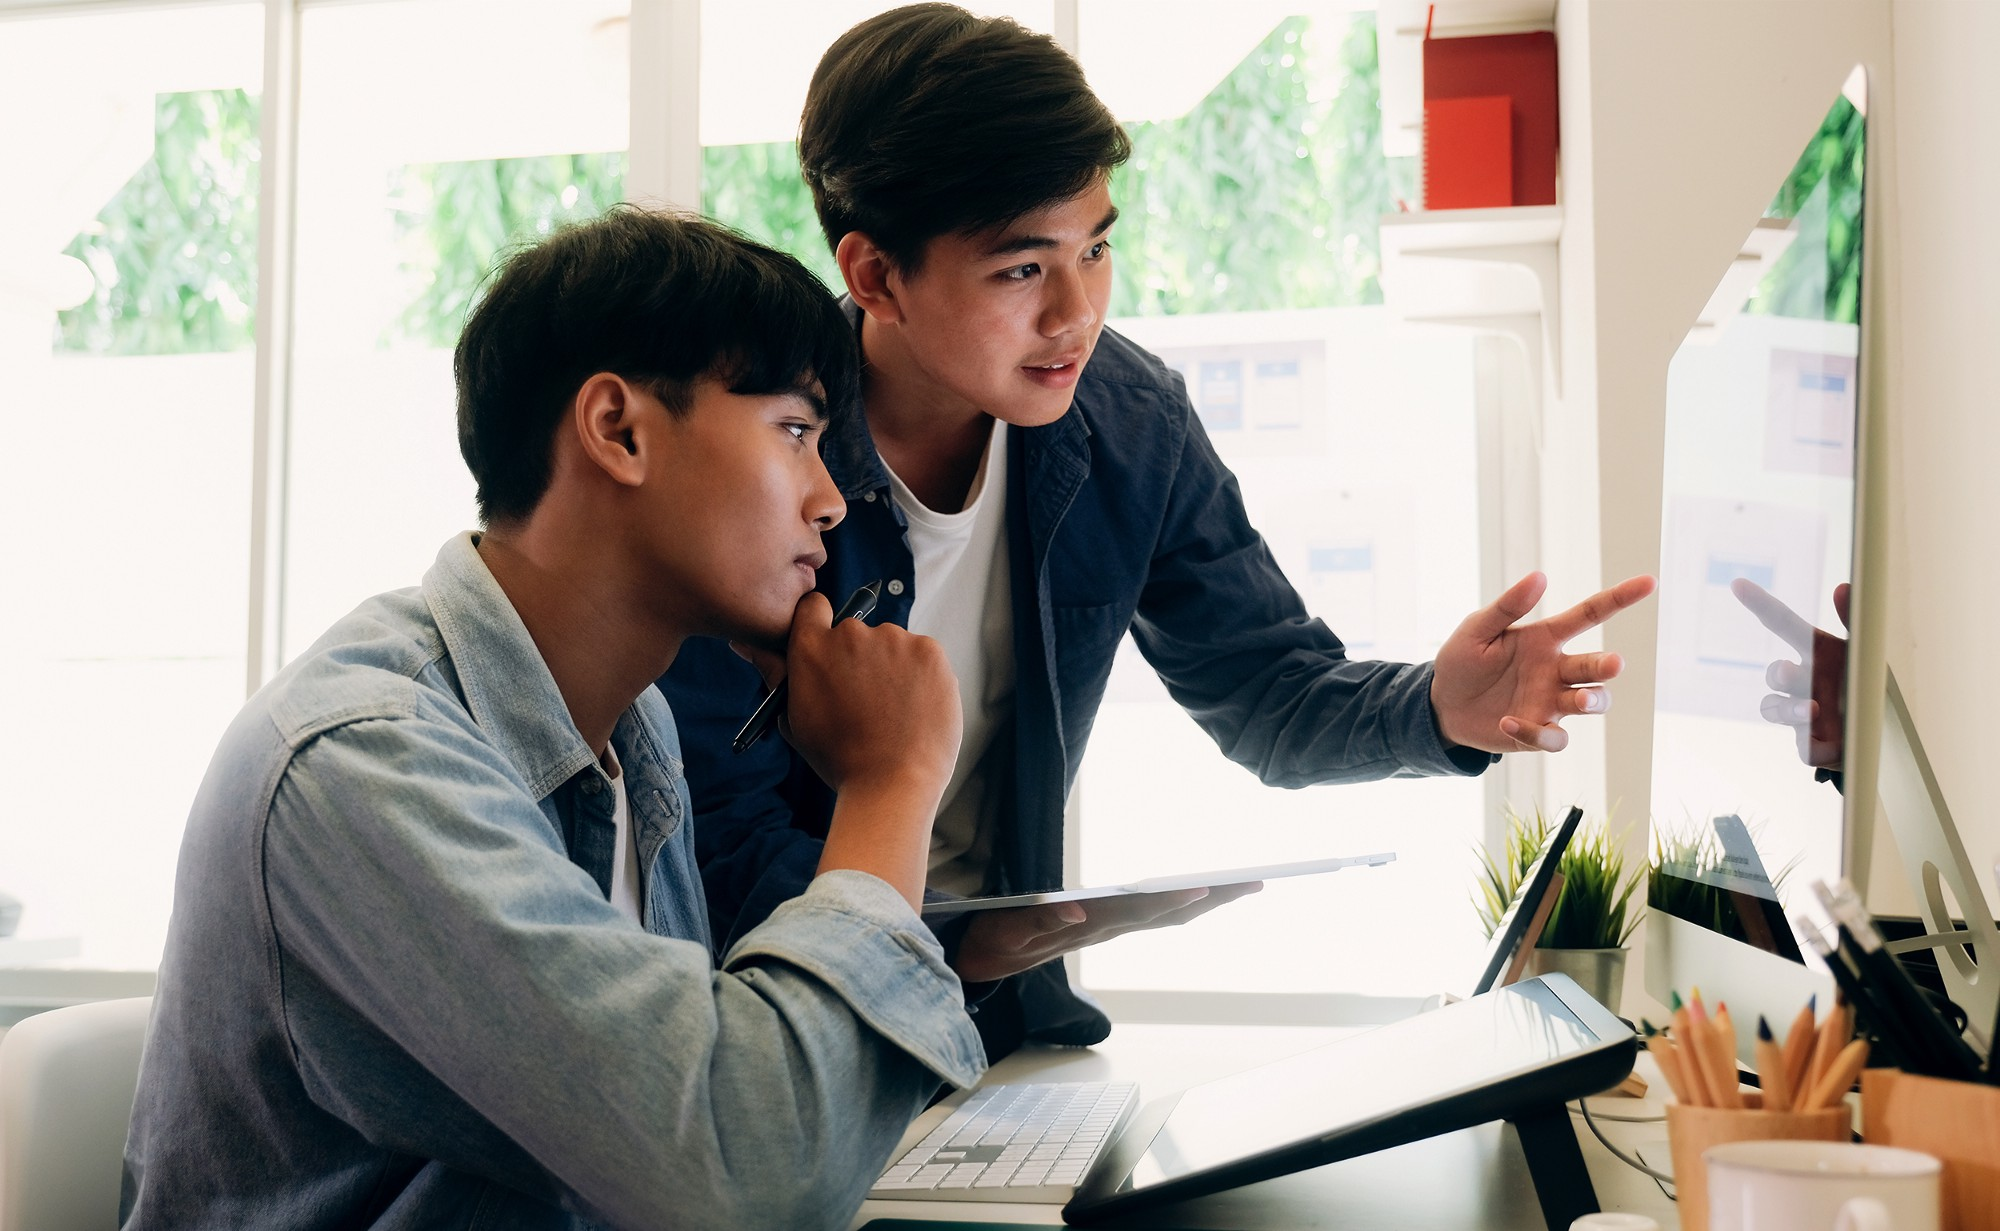 Two young men review a design on a large iMac computer monitor in a bright, sunny room.